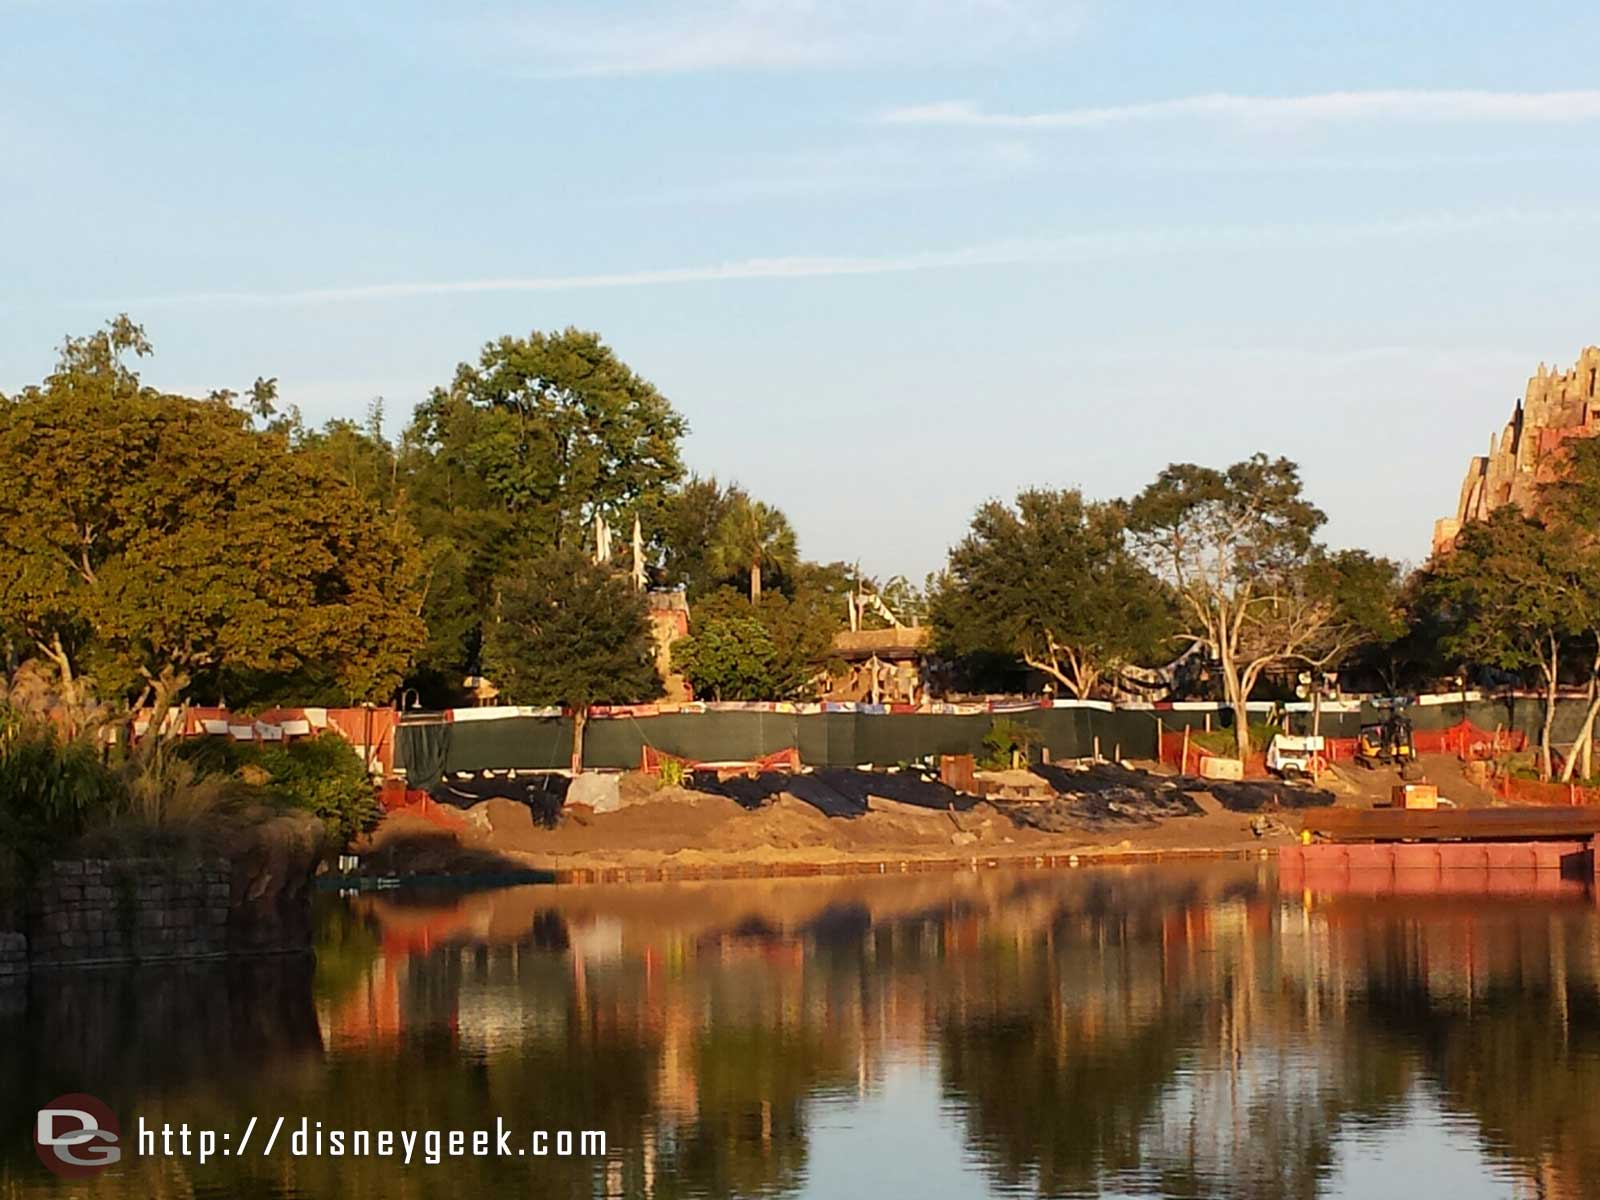 Panning to the left here is a closer look at the Rivers of Light construction.